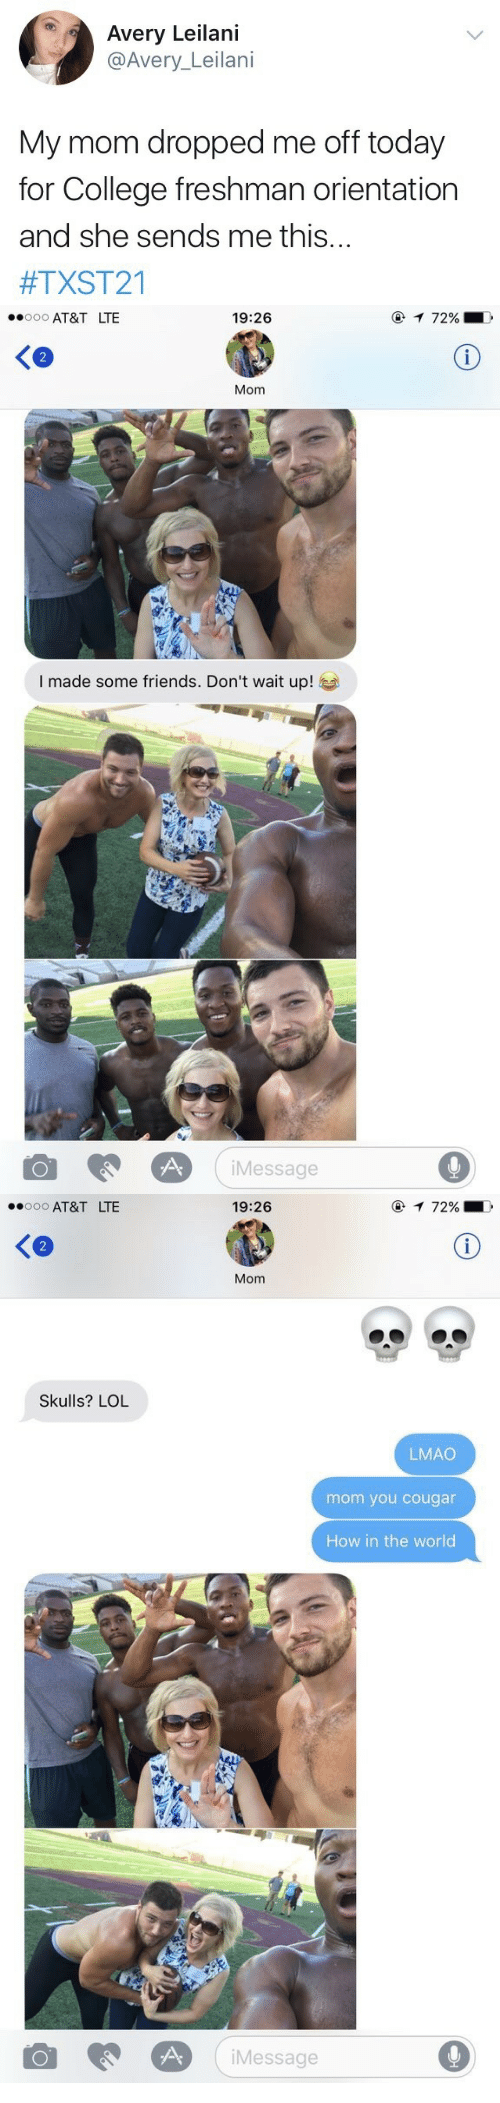 college freshman: Avery Leilani  @Avery_Leilani  My mom dropped me off today  for College freshman orientation  and she sends me this...  #TXST21   AT&T LTE  19:26  2  Mom  I made some friends. Don't wait up!  iMessage  9   AT&T LTE  19:26  Ke  Mom  Skulls? LOL  LMAO  mom you cougar  How in the world  Message  9